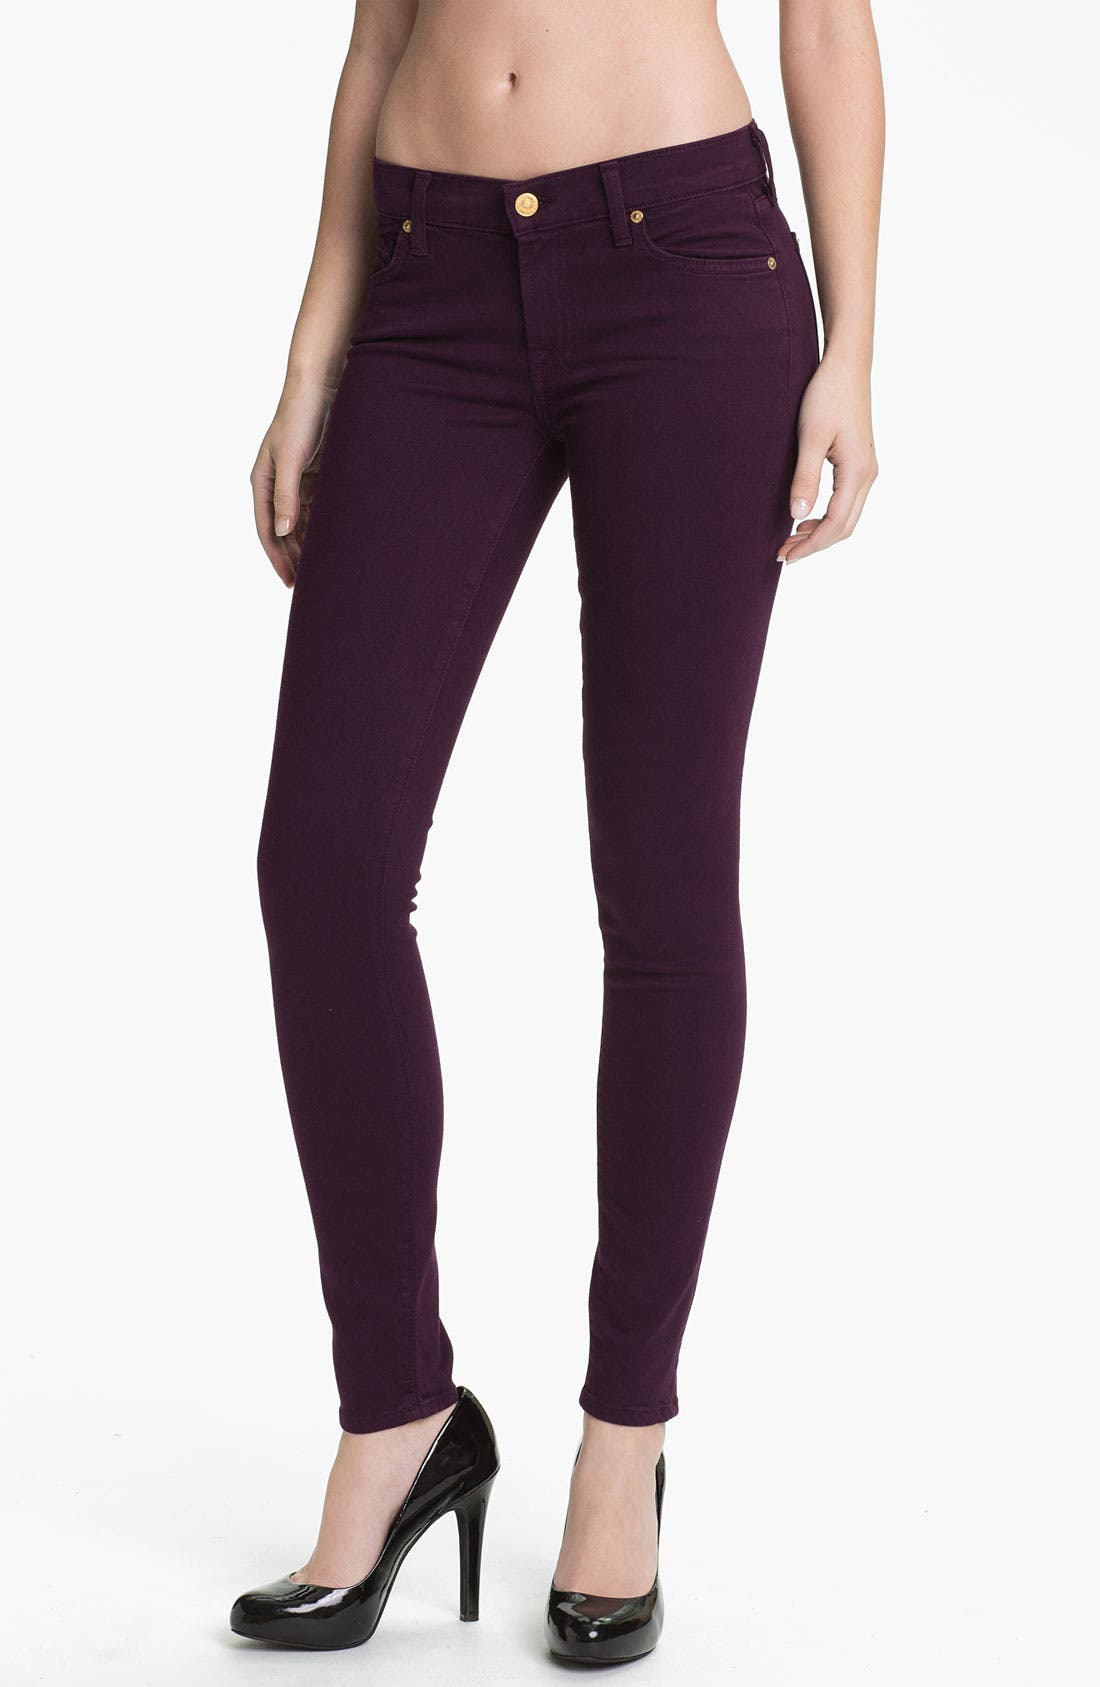 Alternate Image 1 Selected - 7 For All Mankind® 'Slim Illusion' Overdyed Skinny Stretch Jeans (Bordeaux)